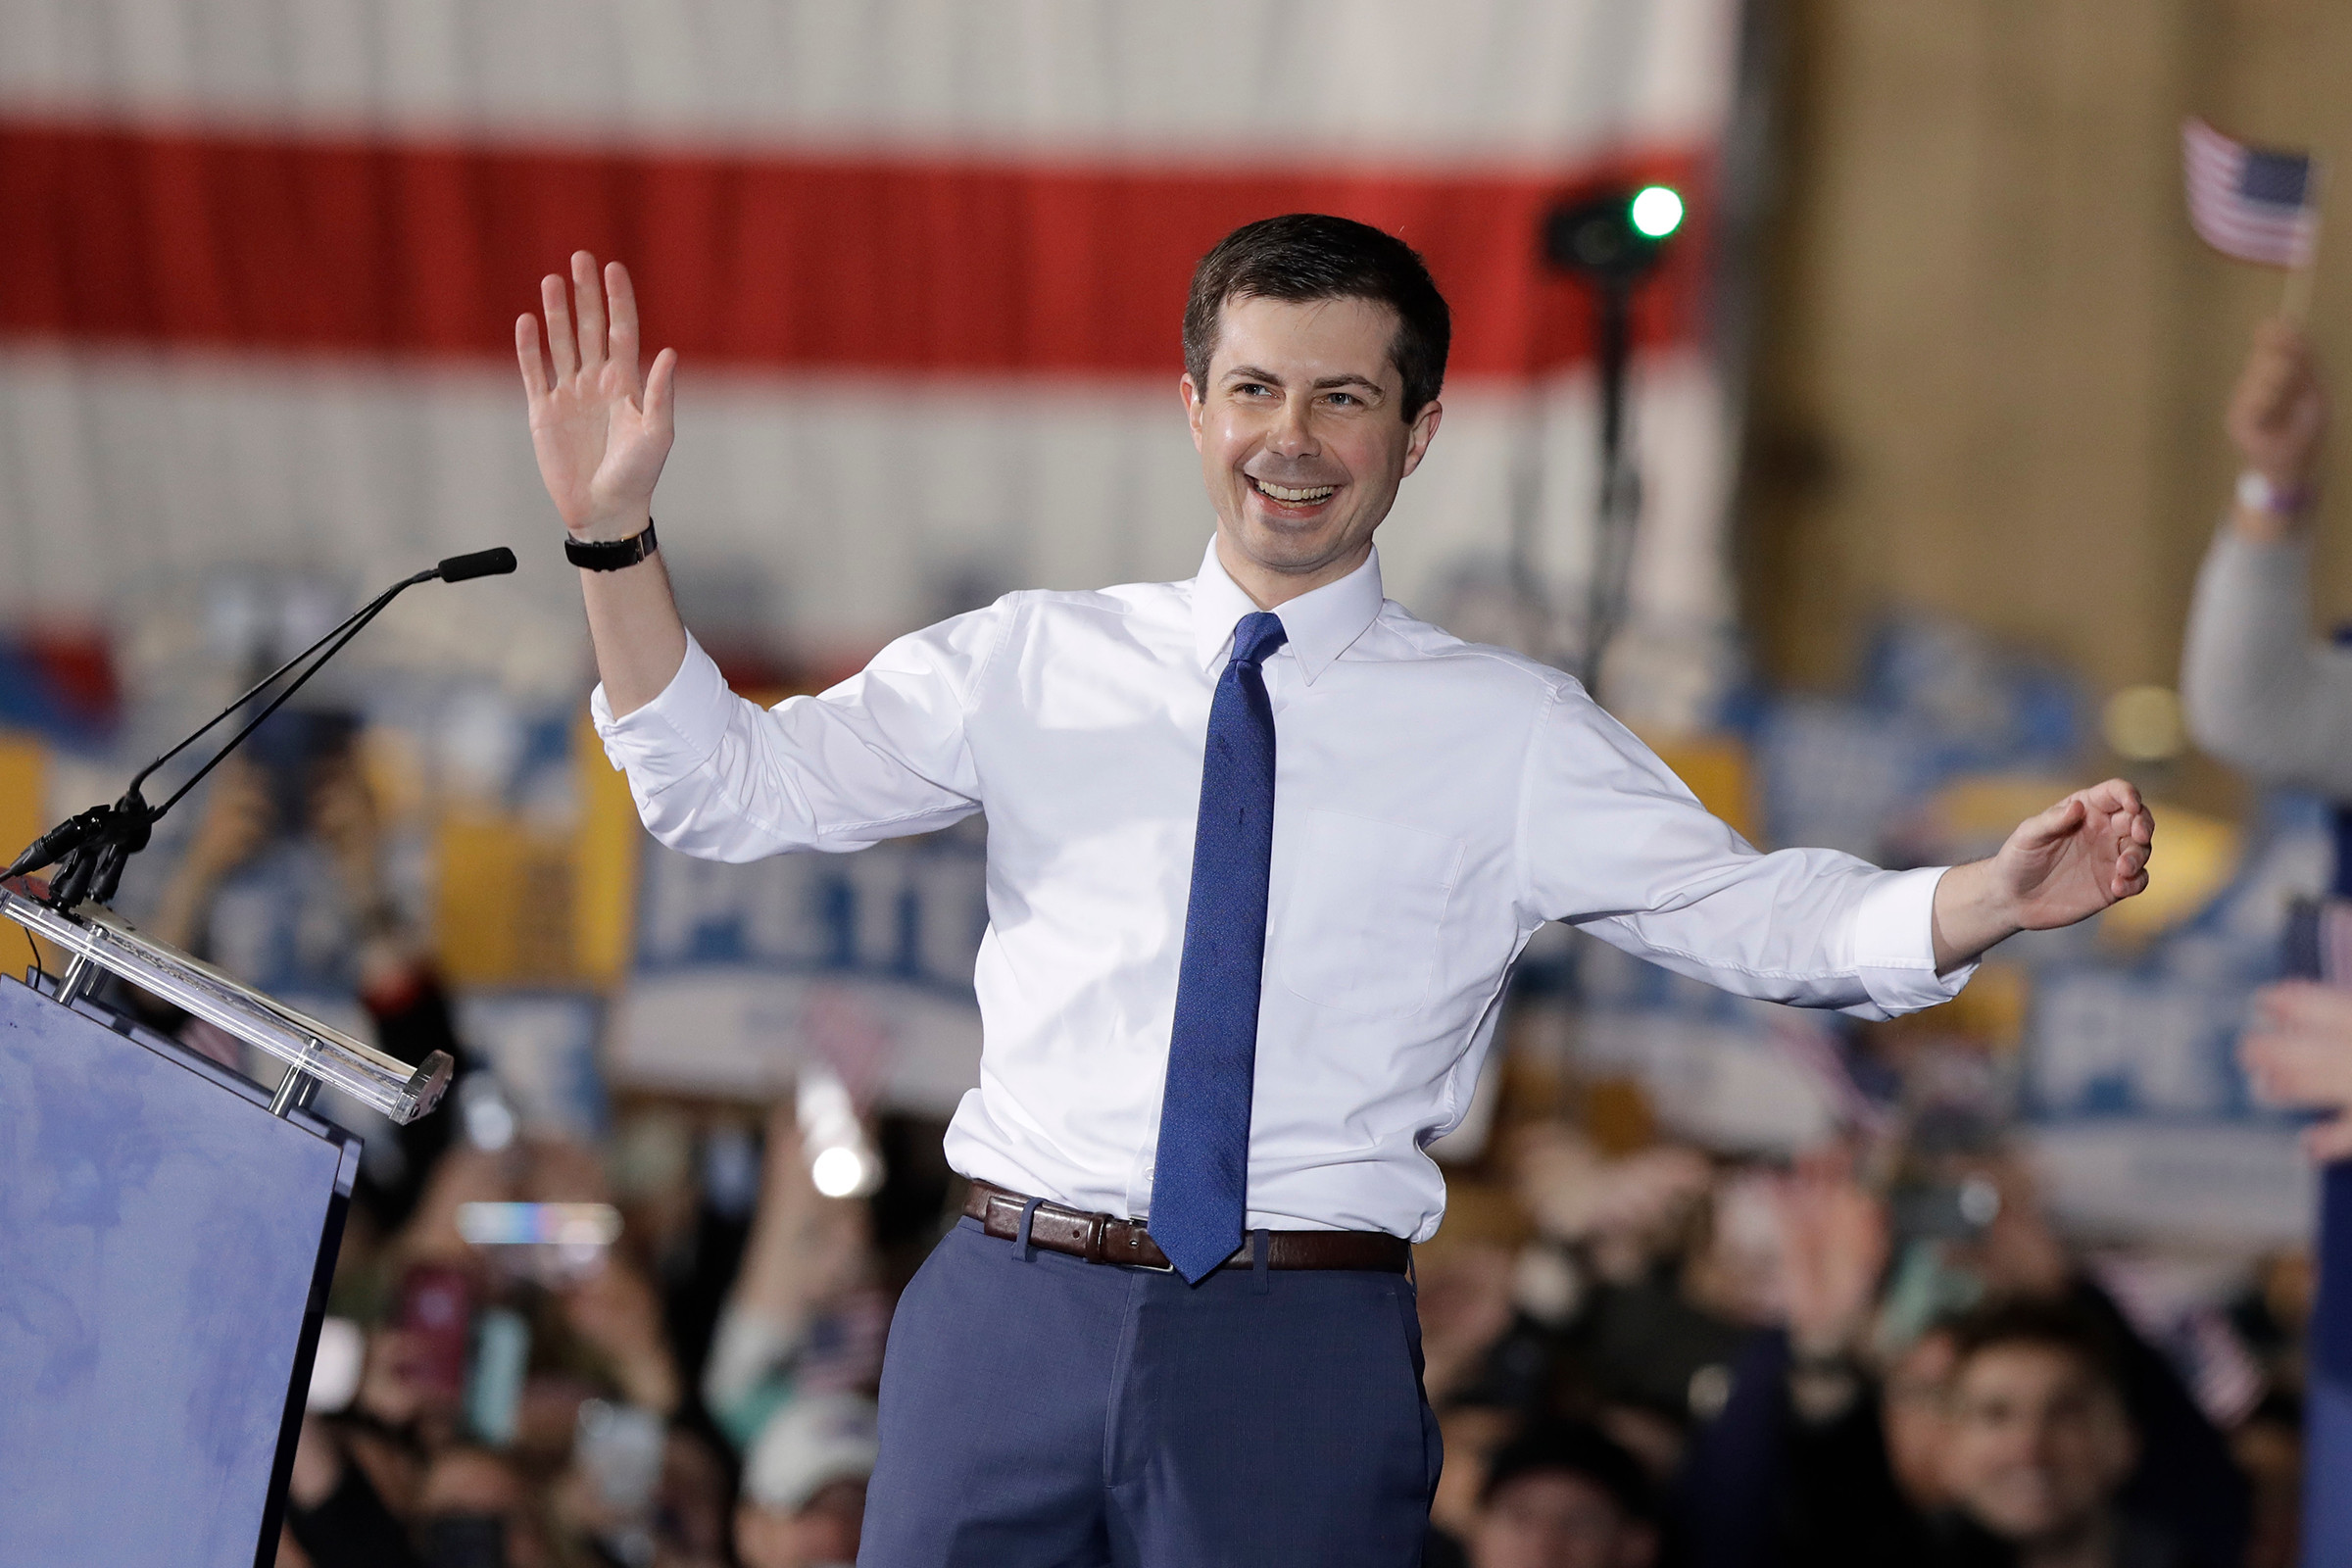 Mayor Pete Buttigieg announces presidential campaign to a large crowd in South Bend, Indiana.